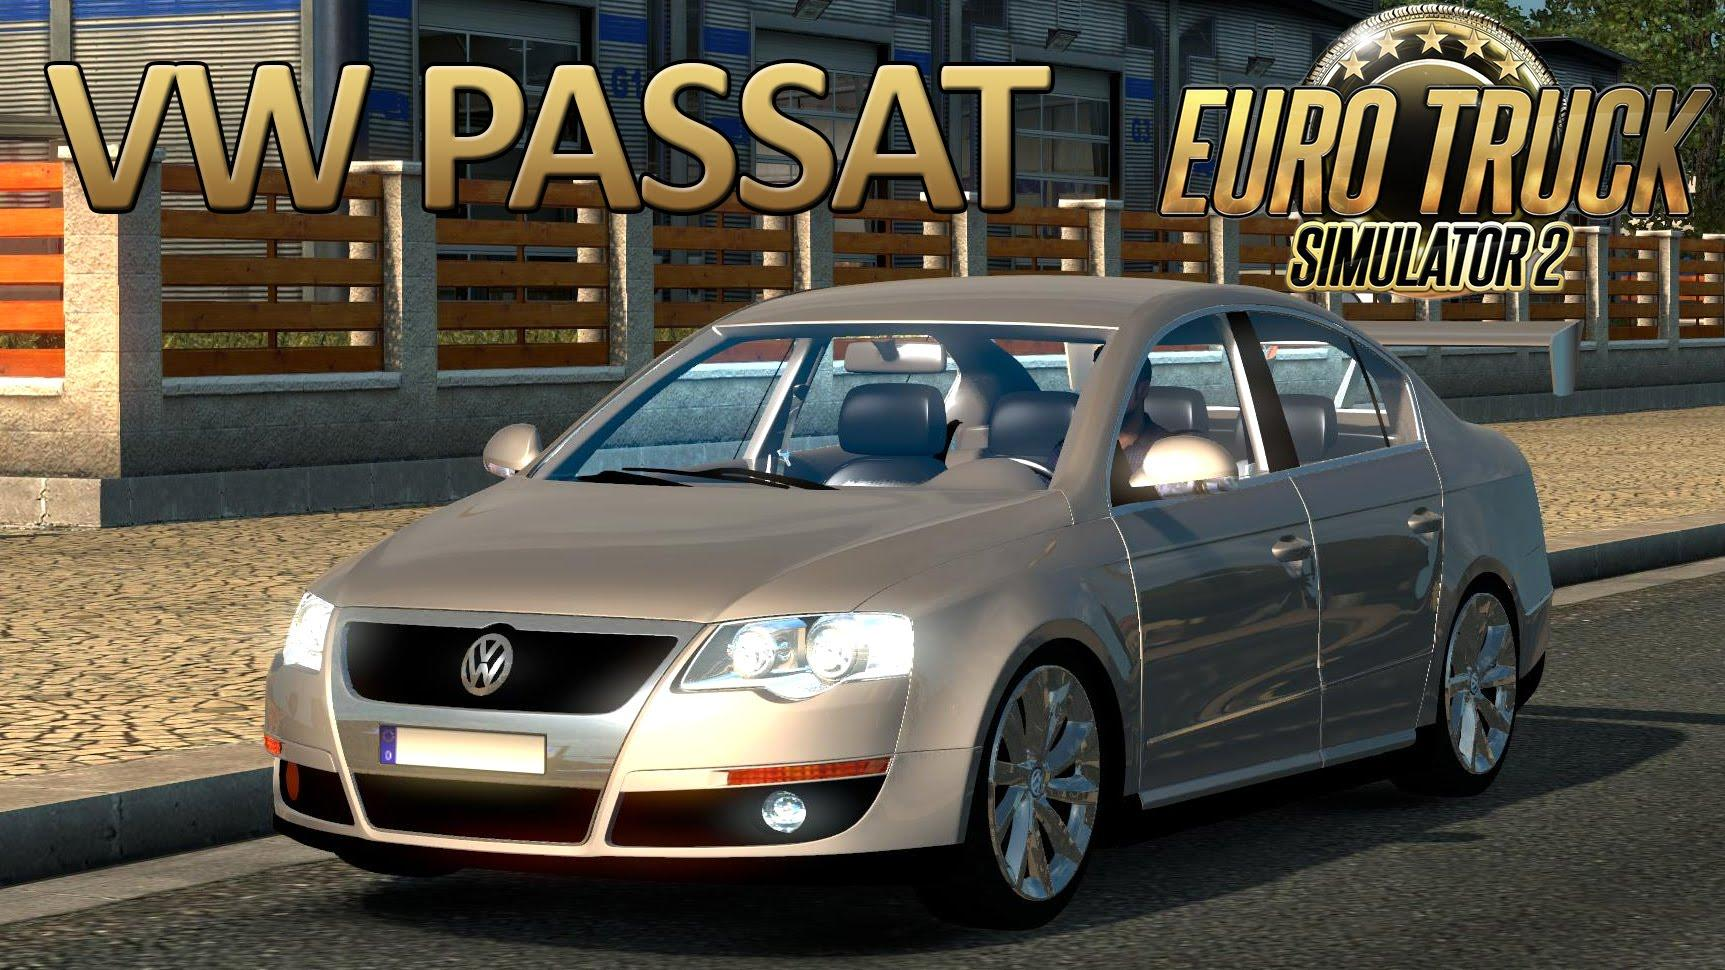 volkswagen passat b6 interior v1 8 updated car mod ets2 mod. Black Bedroom Furniture Sets. Home Design Ideas